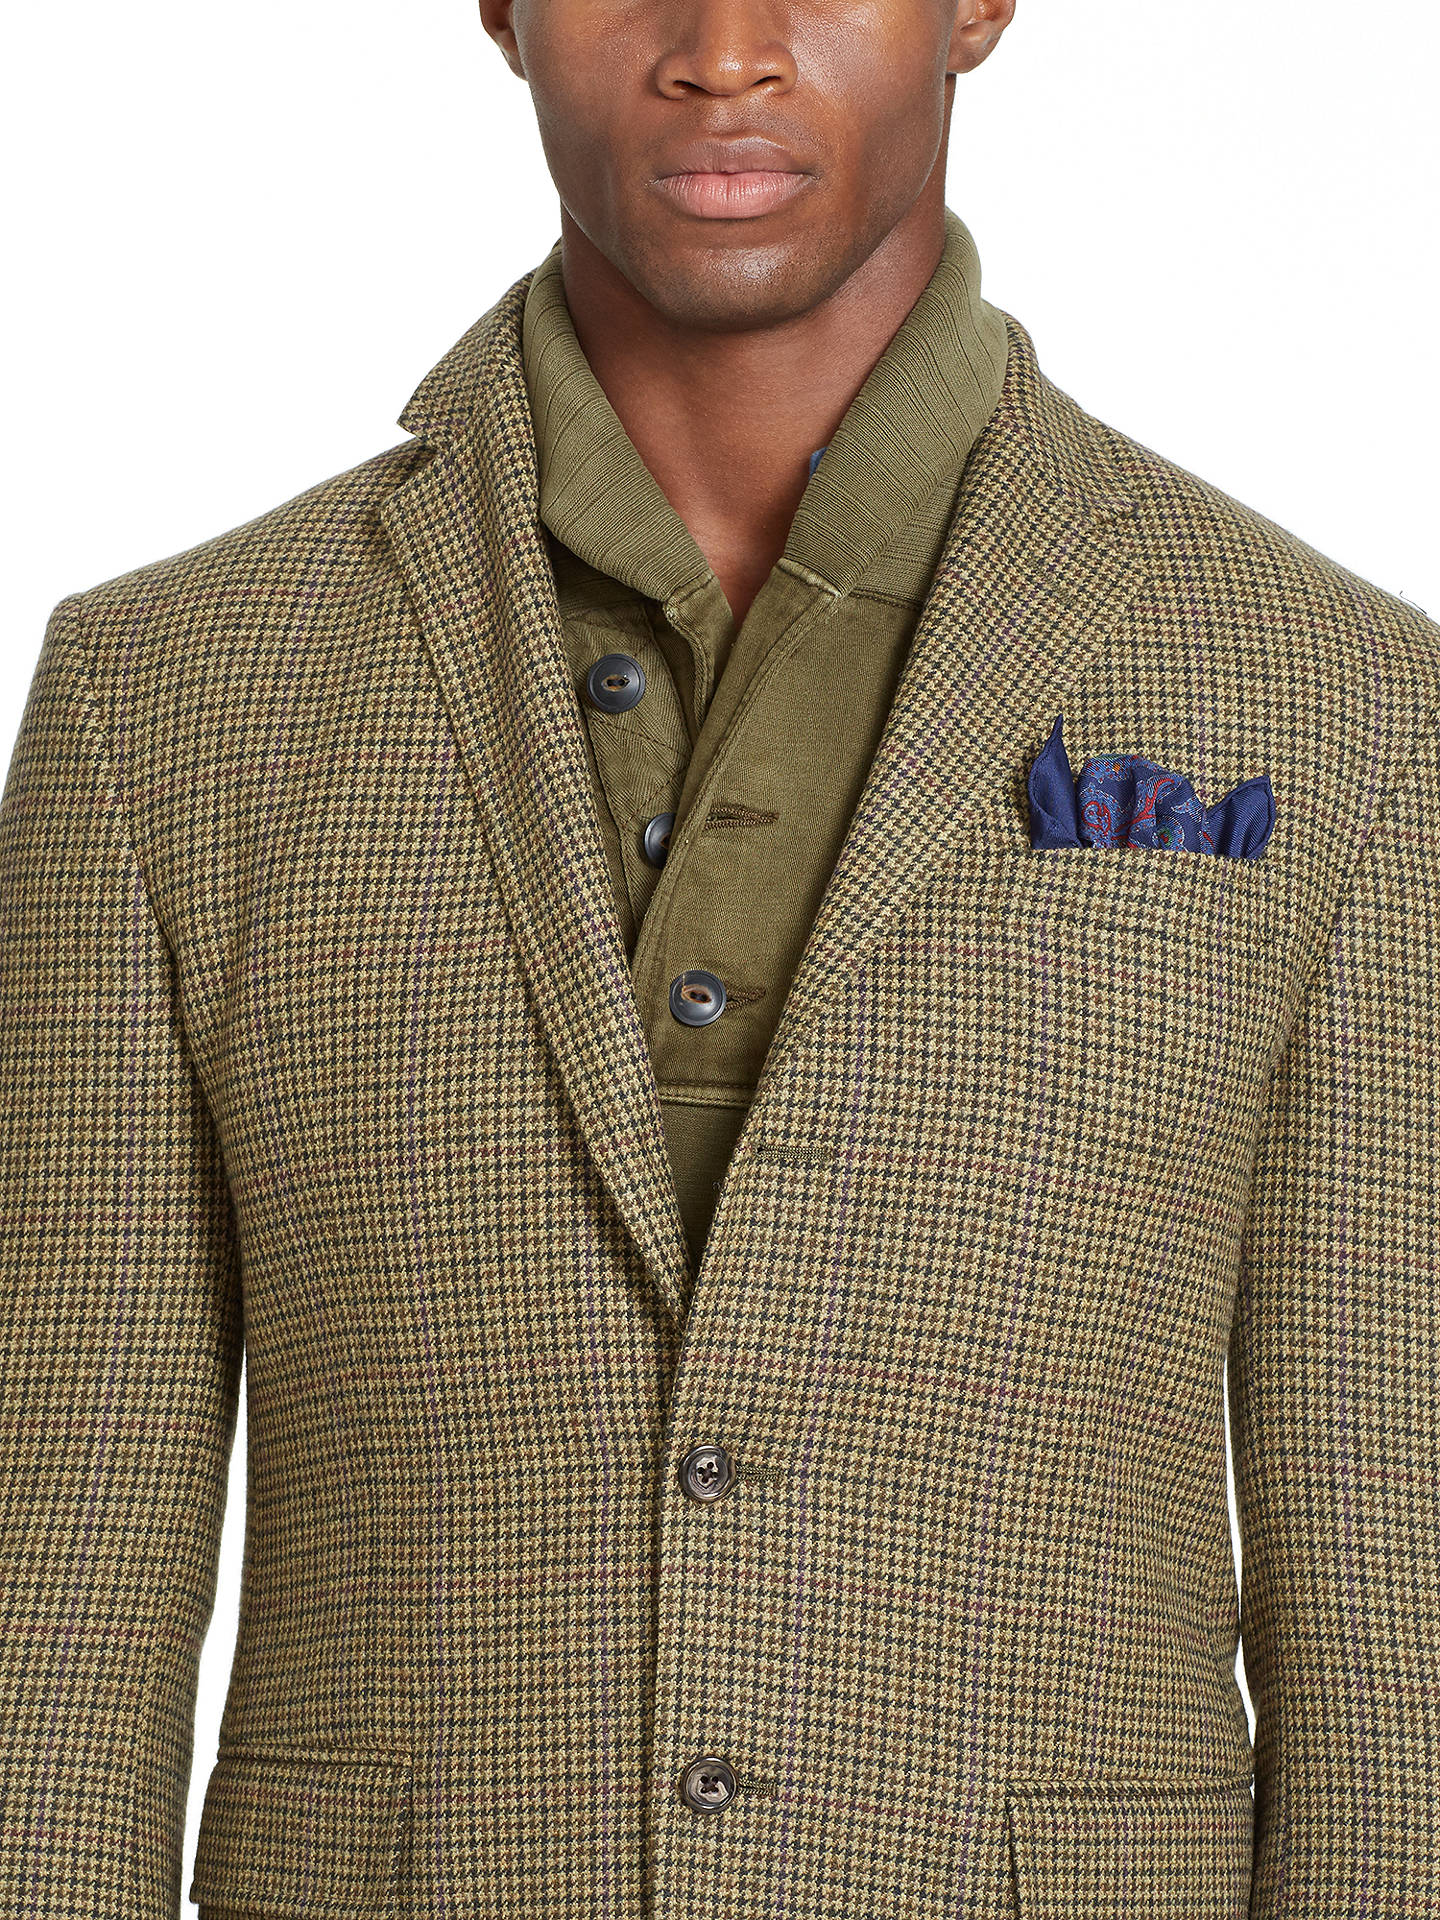 f0ed3dc7ddf092 ... BuyPolo Ralph Lauren Polo Houndstooth Sports Jacket, Olive Tan, 40R  Online at johnlewis ...